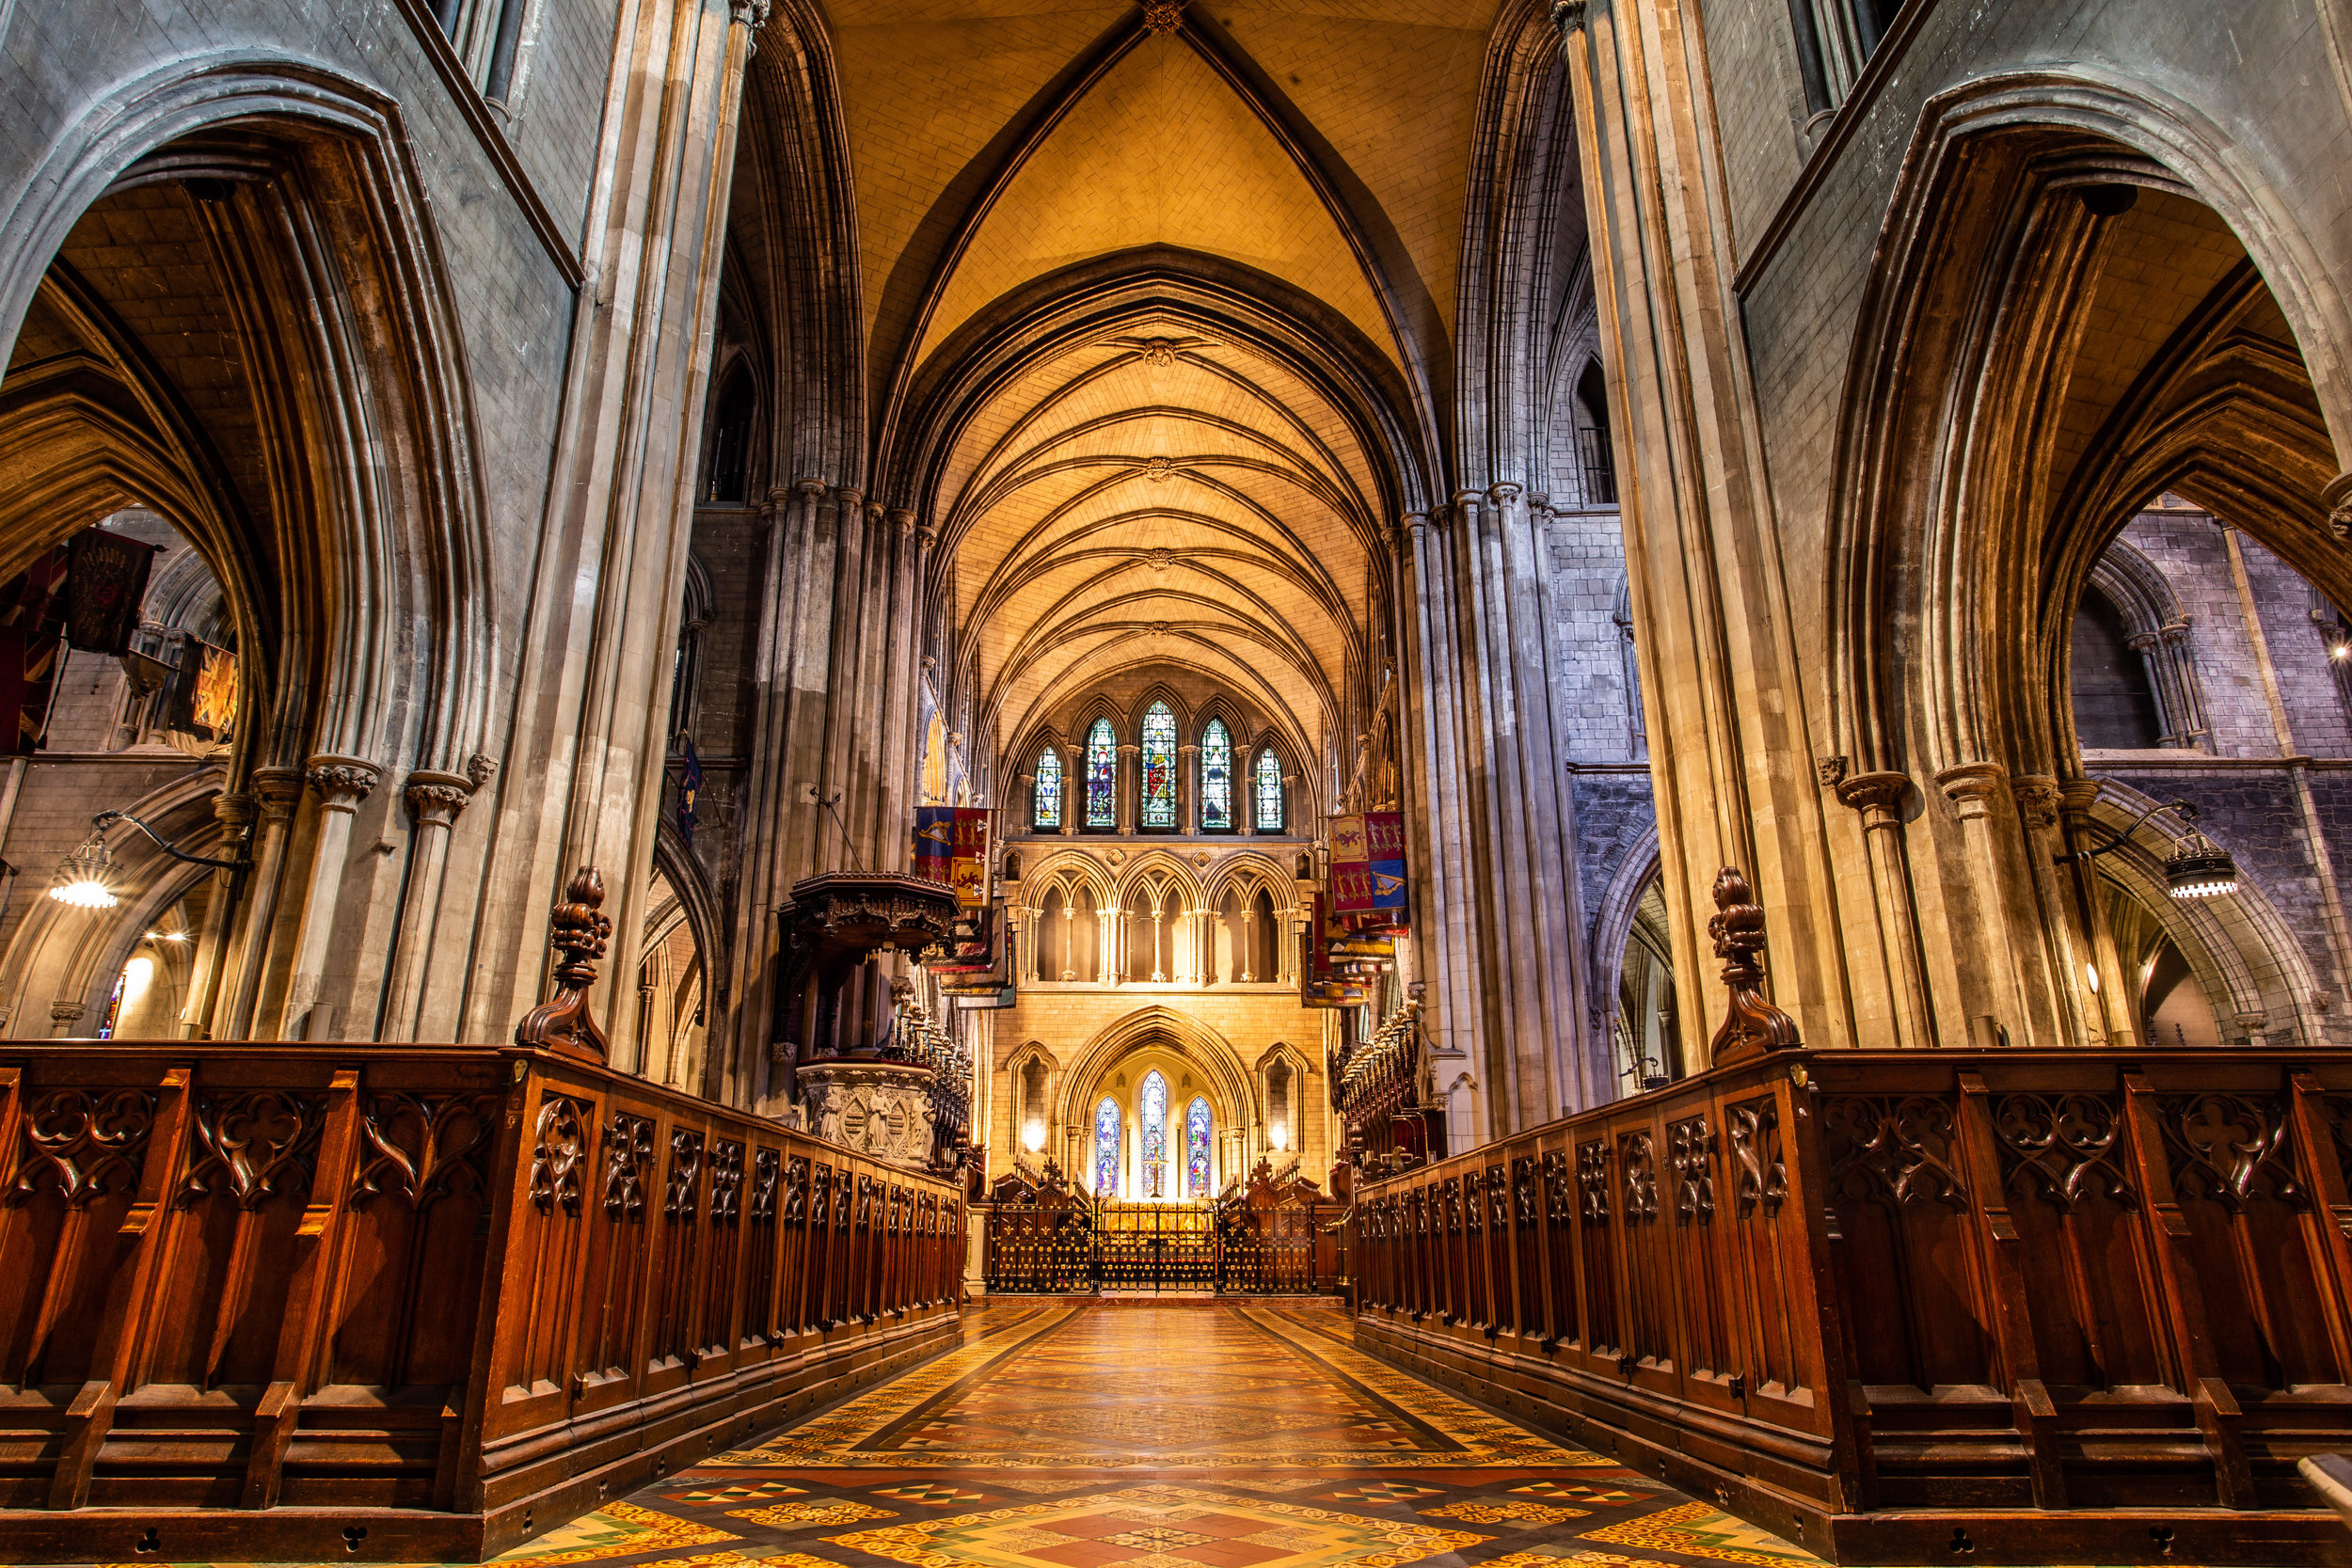 Pictured: St. Patrick's Cathedral, Dublin; Photo Credit: Cathy Baitson